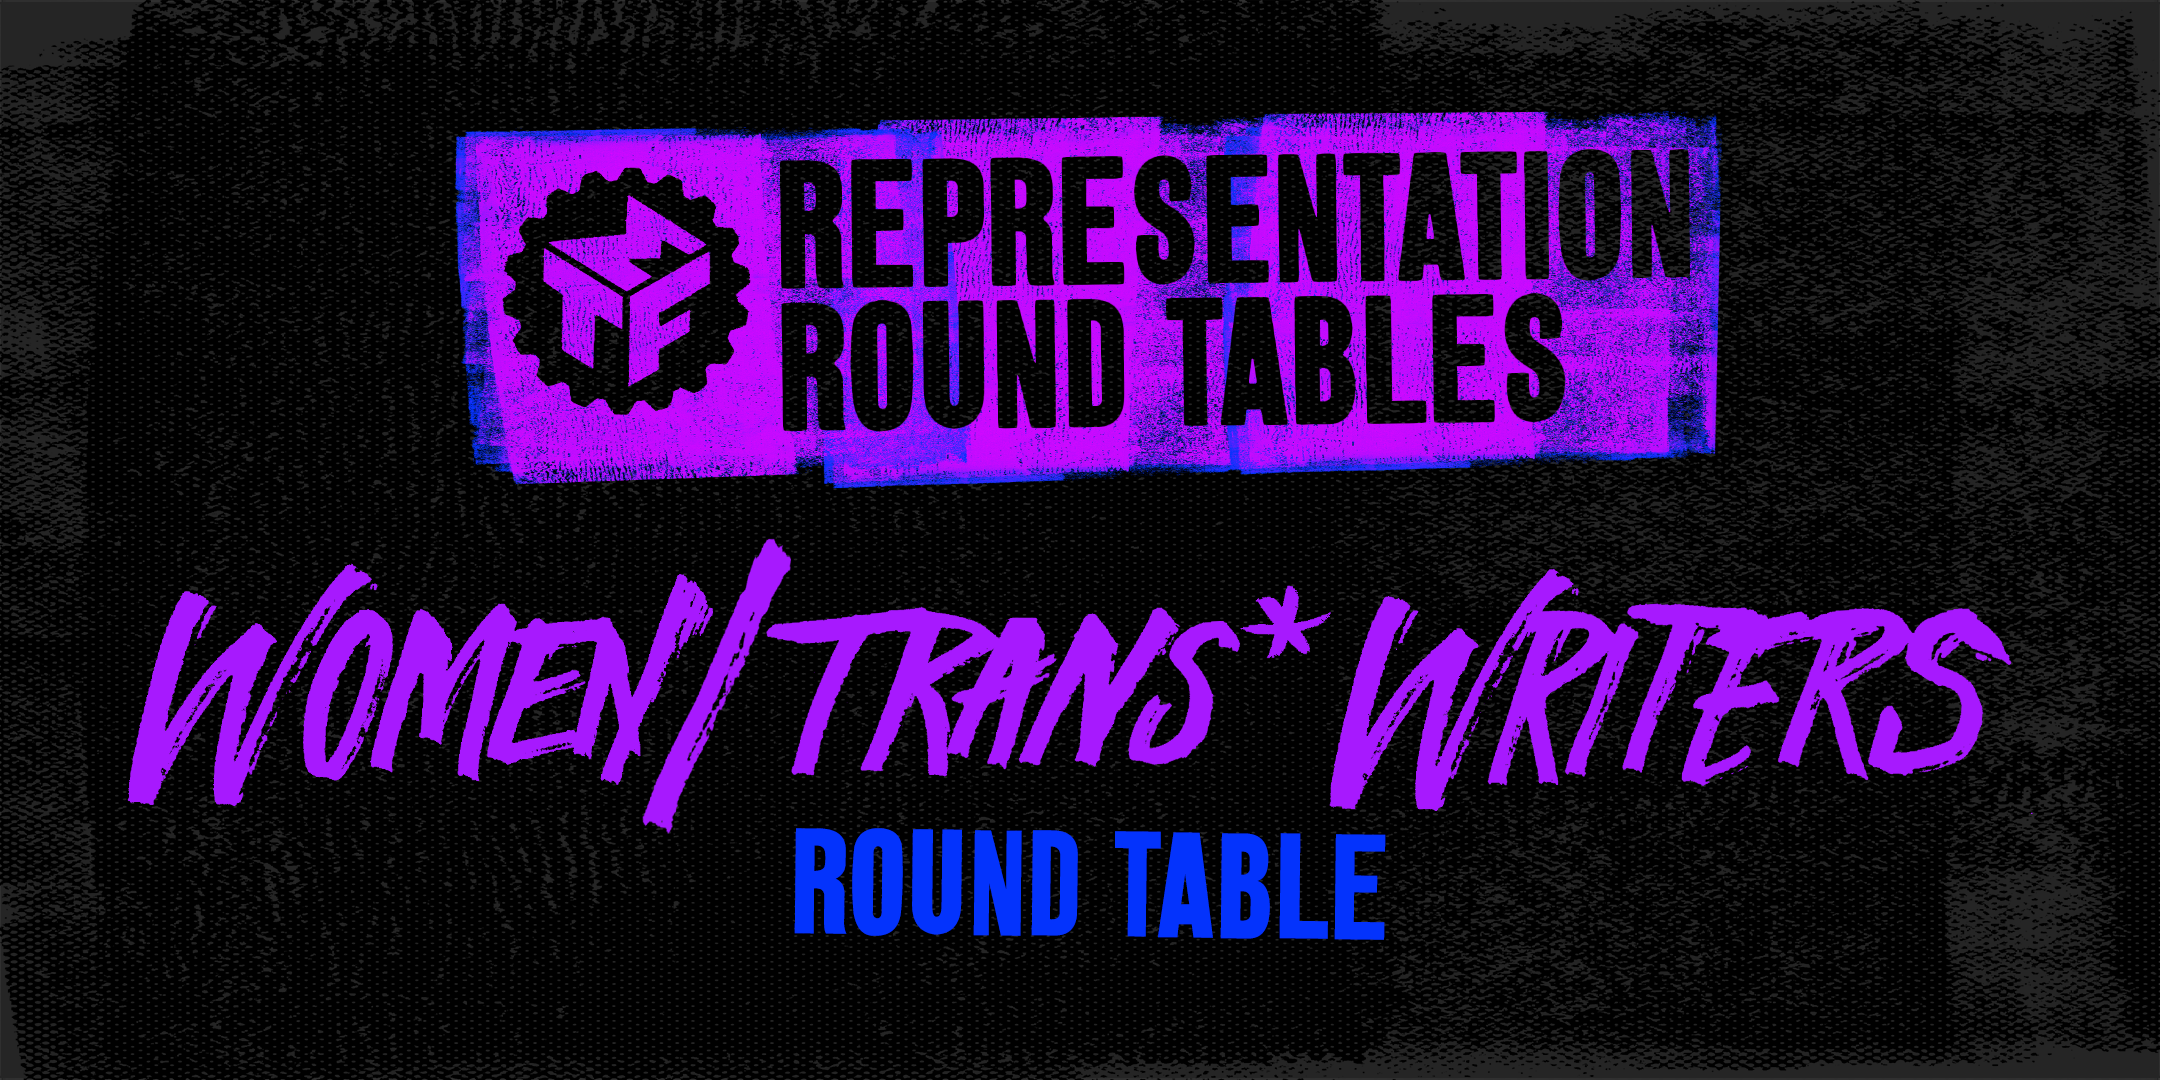 Women & Trans* Roundtable